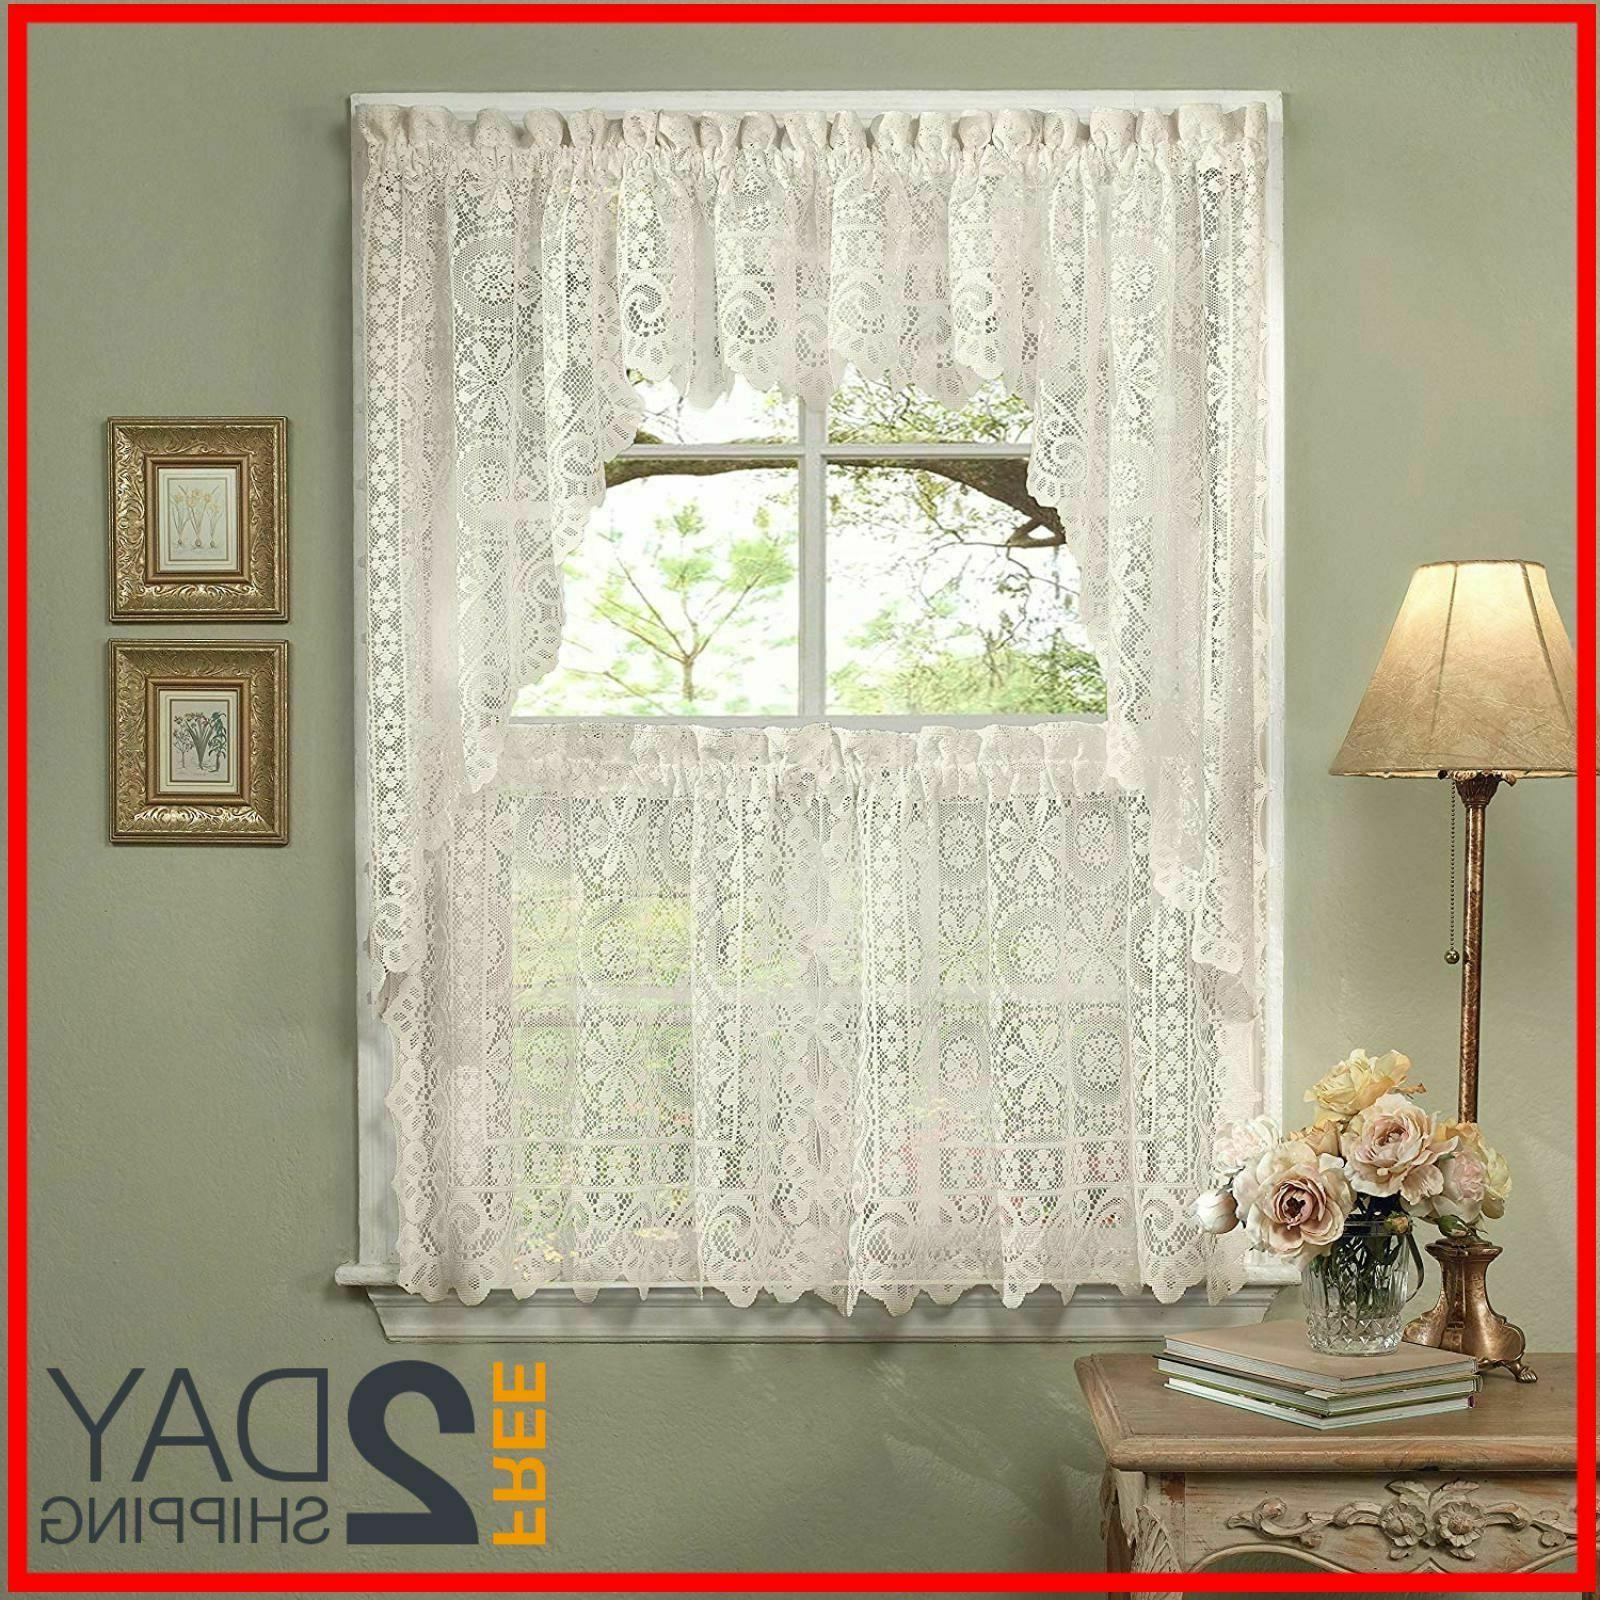 5 Pc Kitchen Curtain Set, Swag Pair, Val With Regard To Chardonnay Tier And Swag Kitchen Curtain Sets (View 2 of 20)